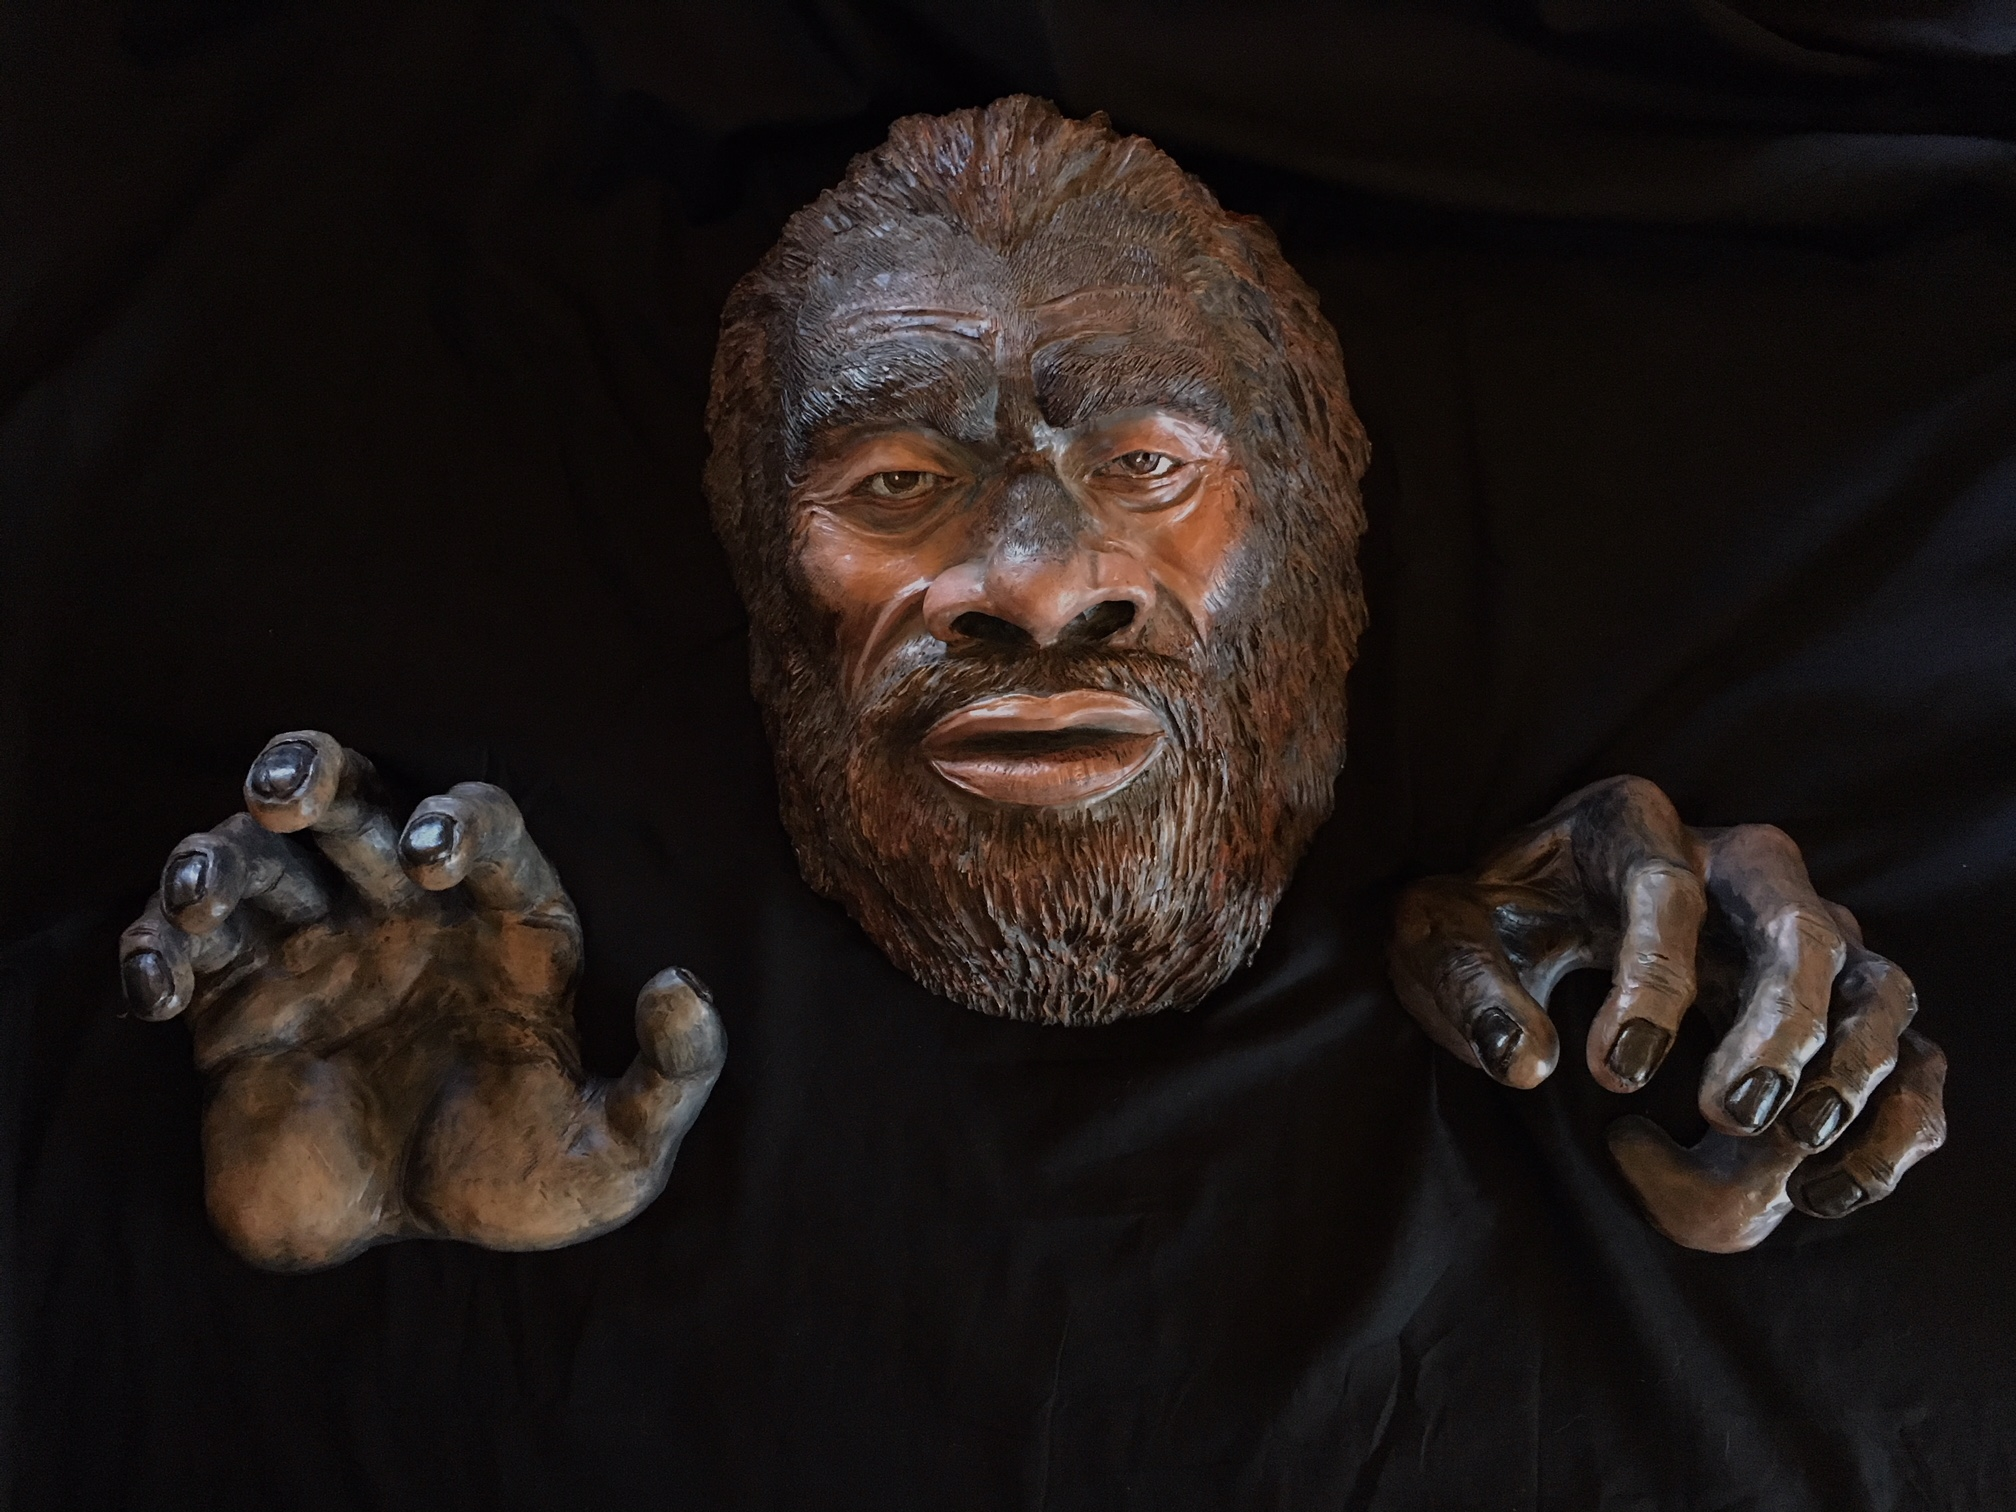 My Dark Passenger Bigfoot Sculpture